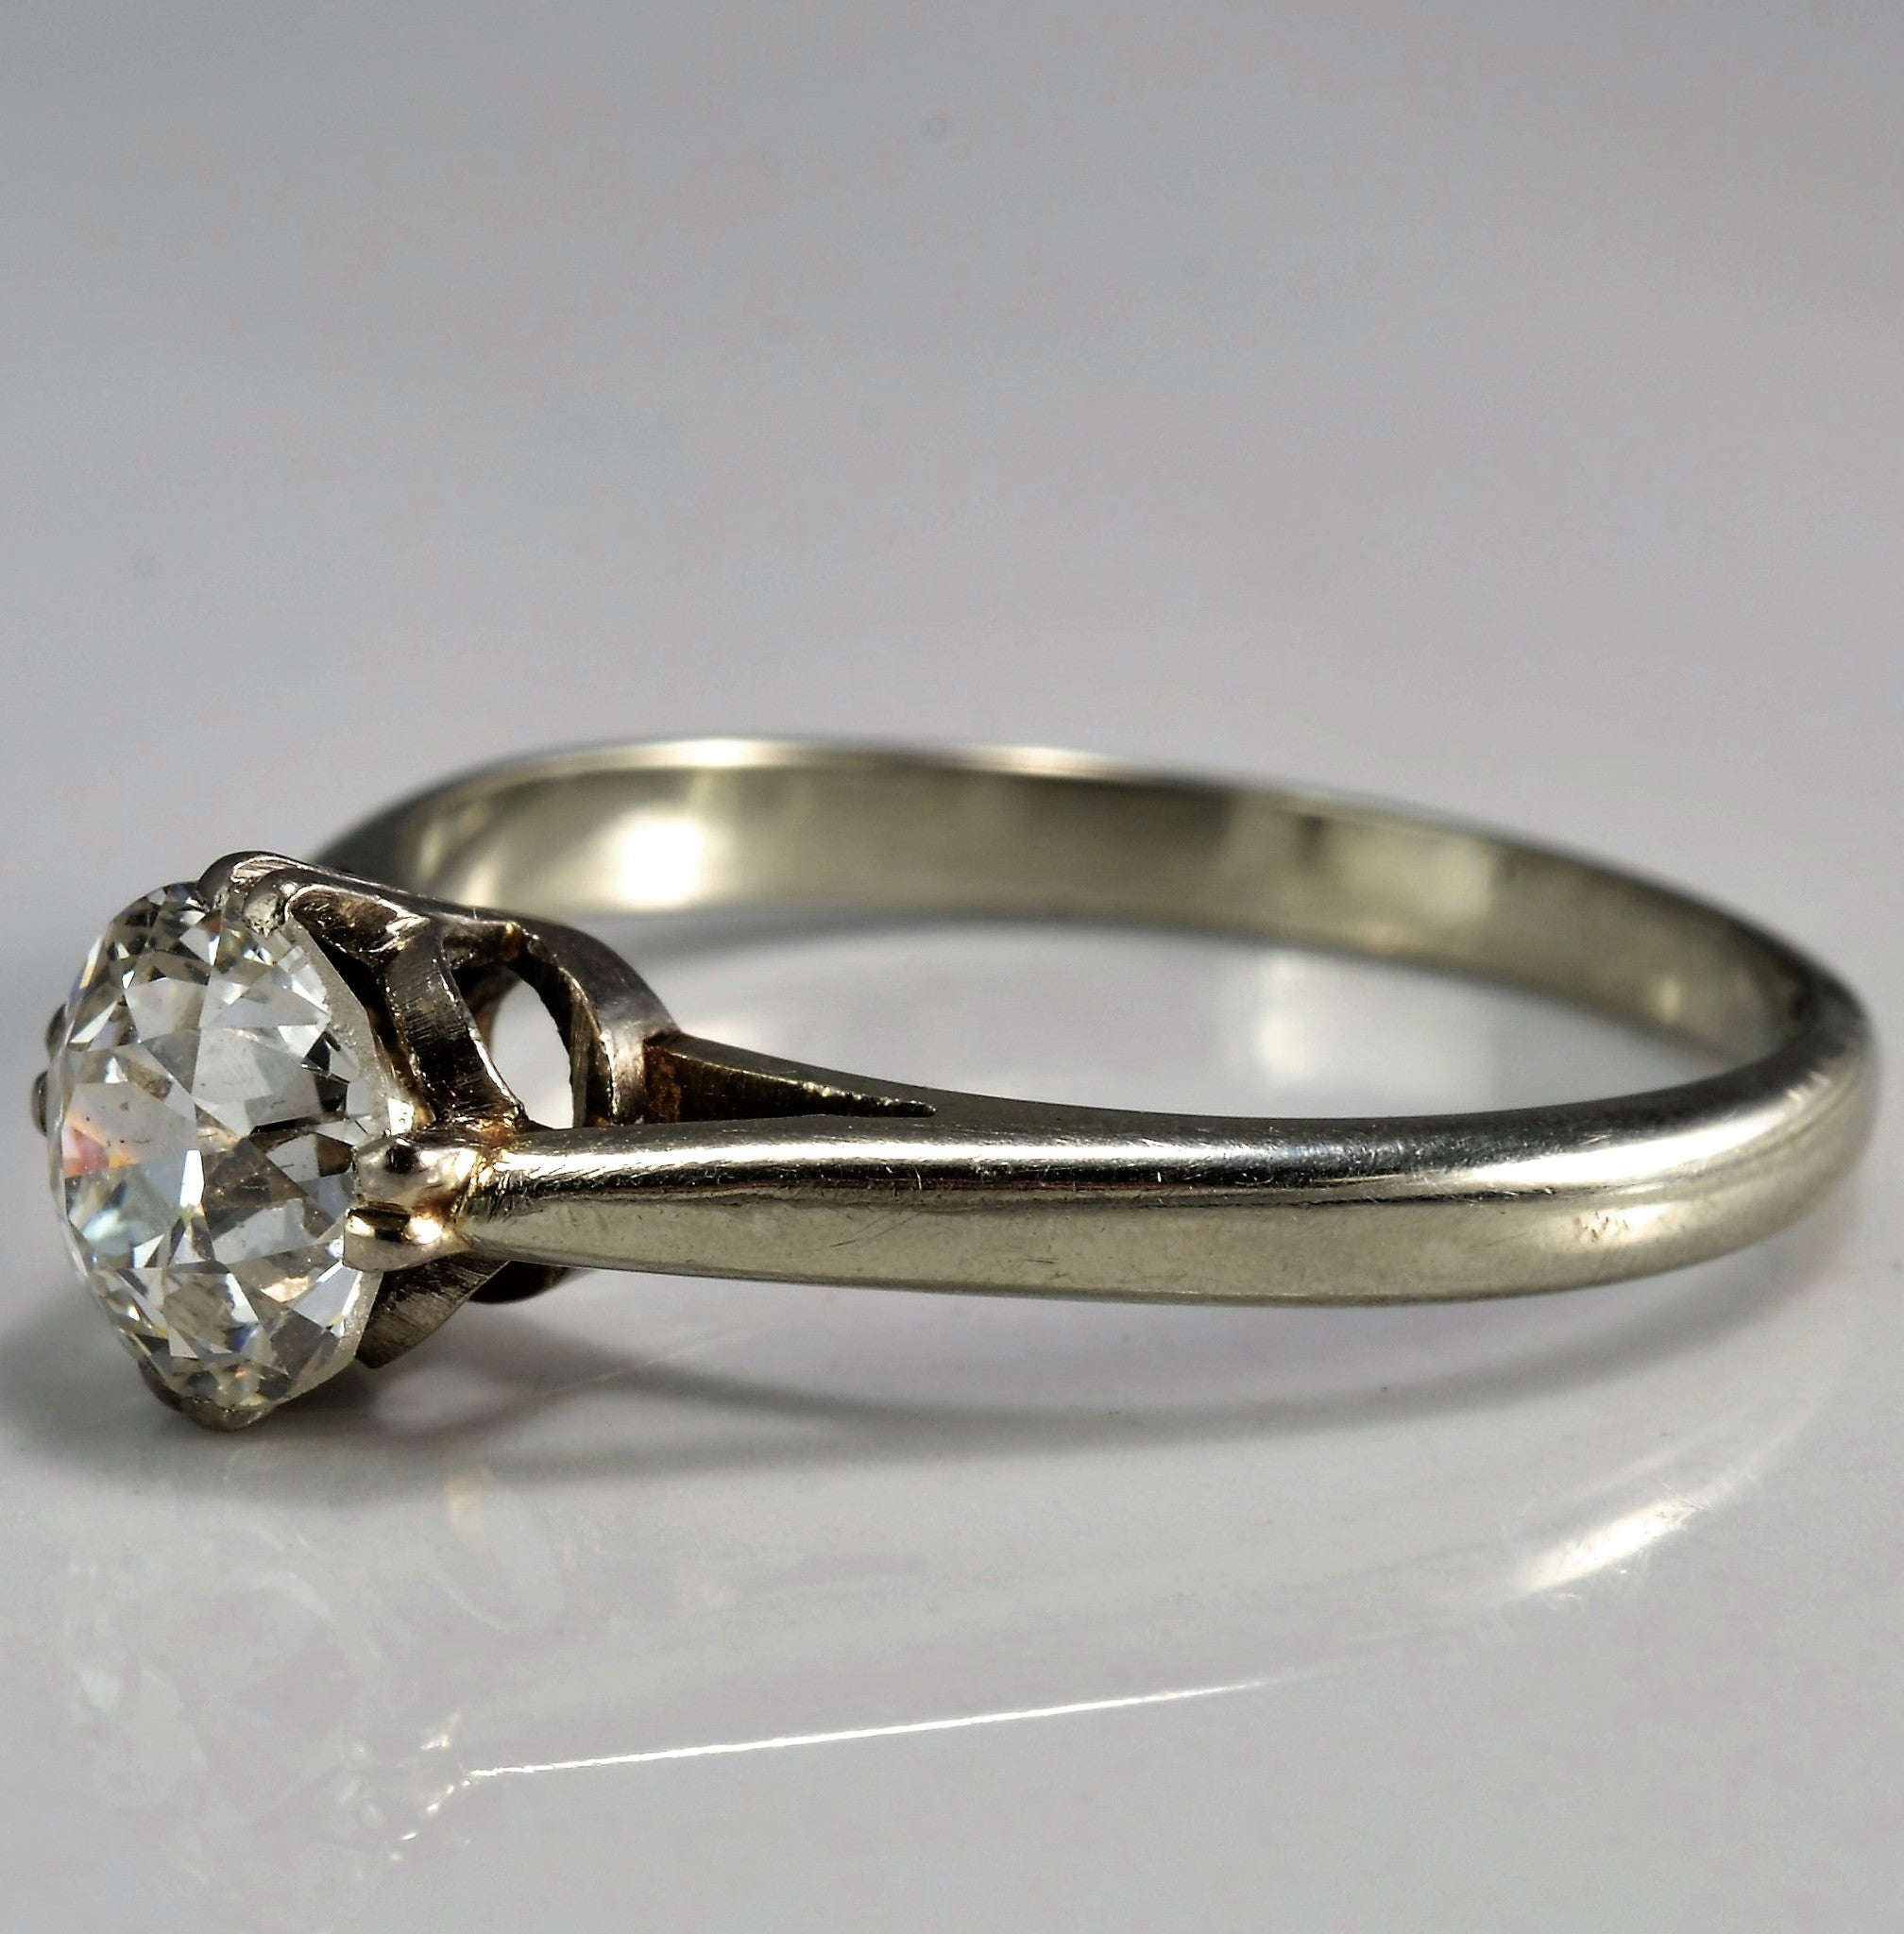 Early Retro Era Solitaire Engagement Ring | 0.95 ct, SZ 7.5 |